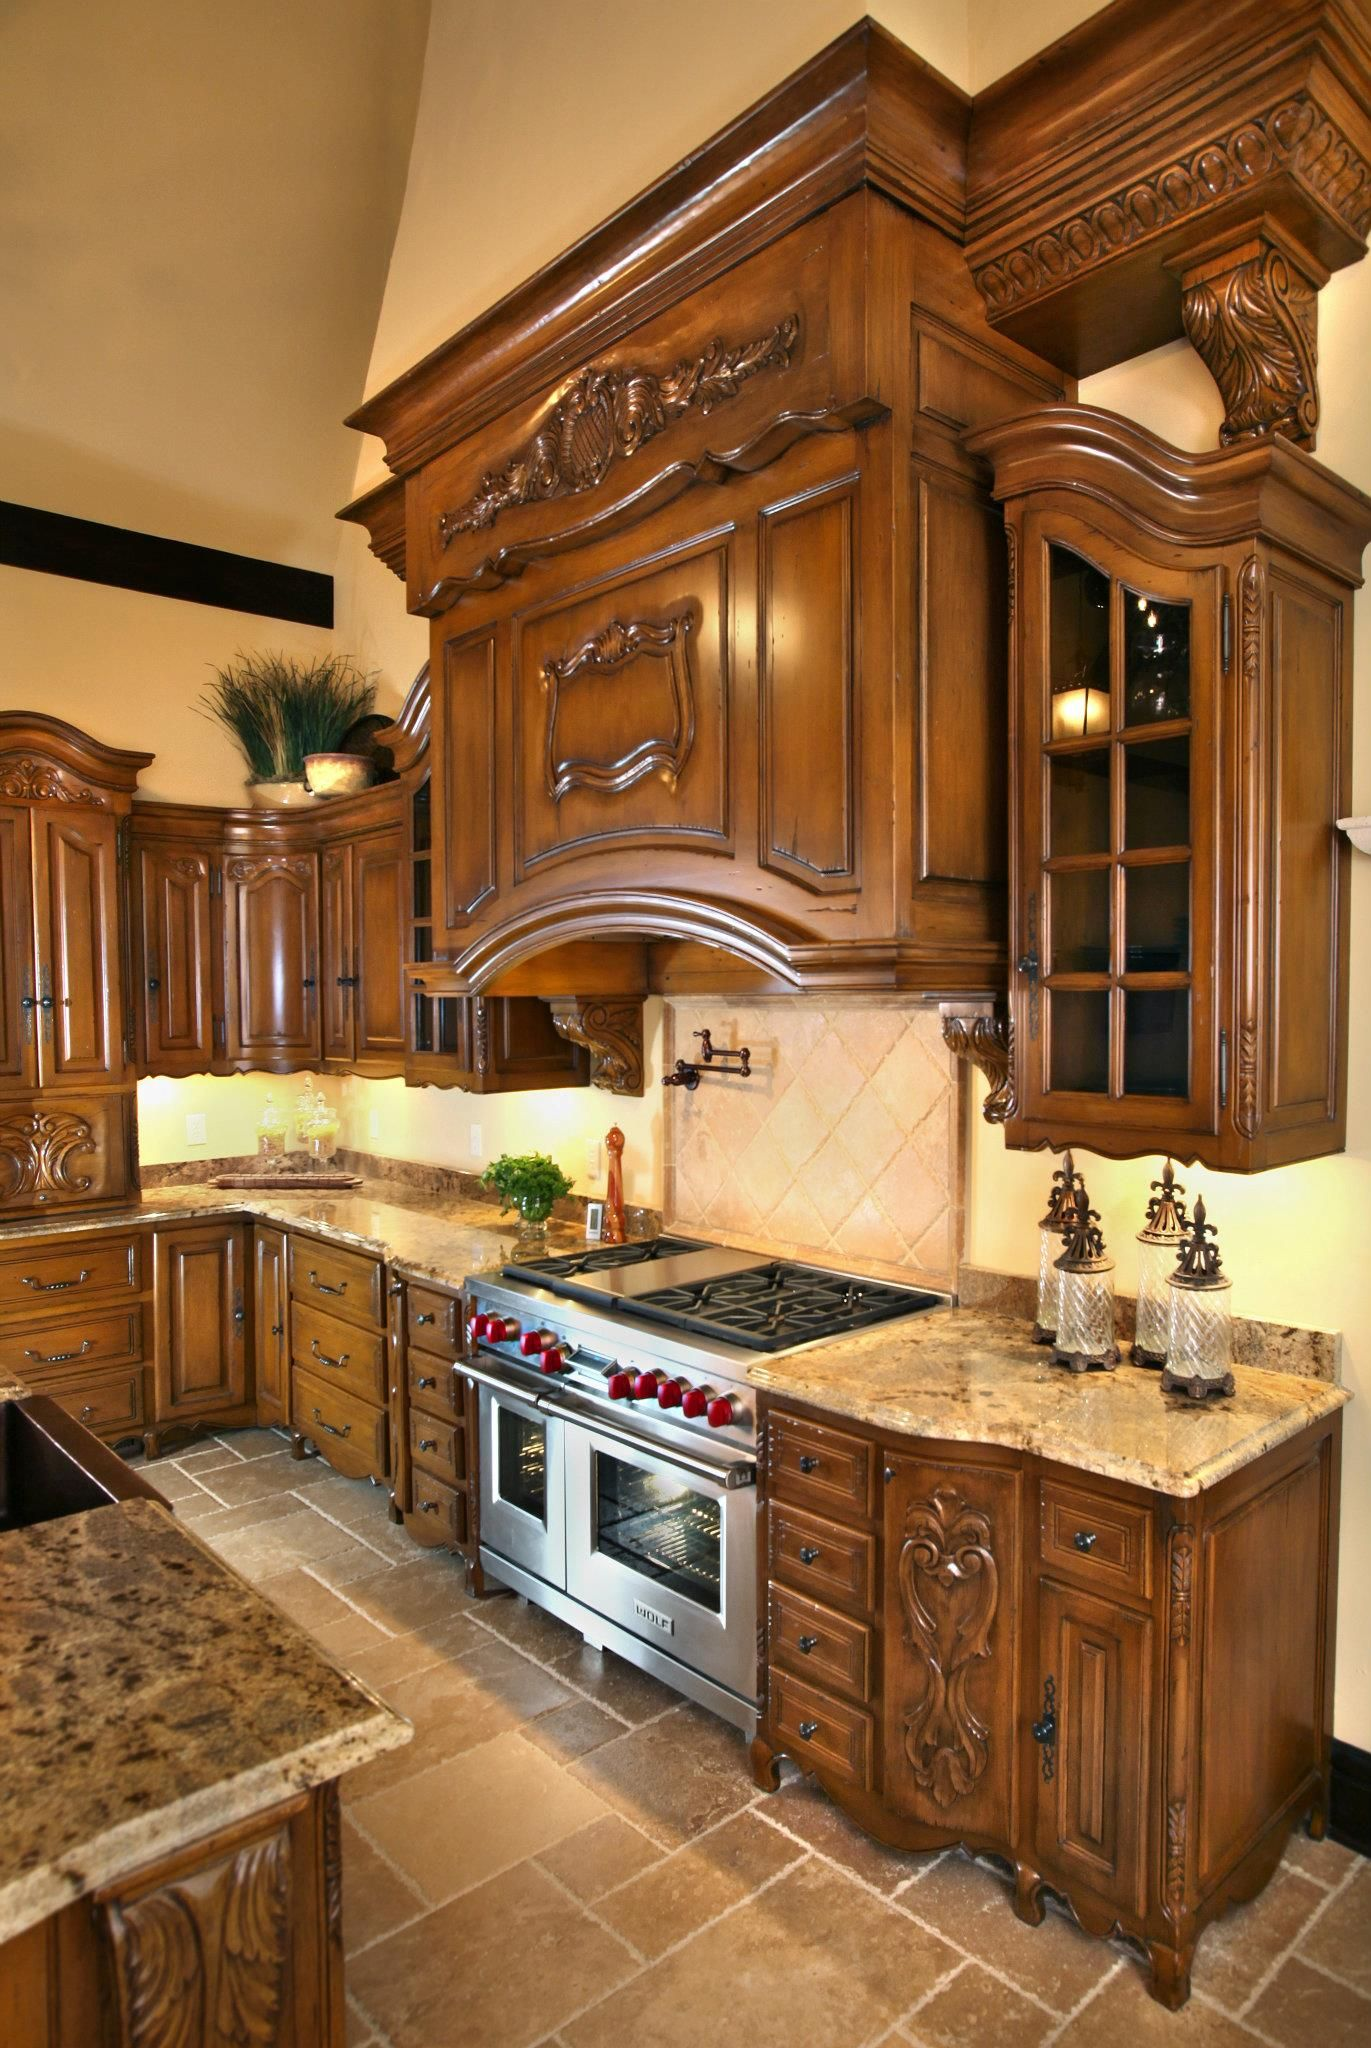 10 Kitchen And Home Decor Items Every 20 Something Needs: True Craftsmanship Went In These Cabinets. The Commercial